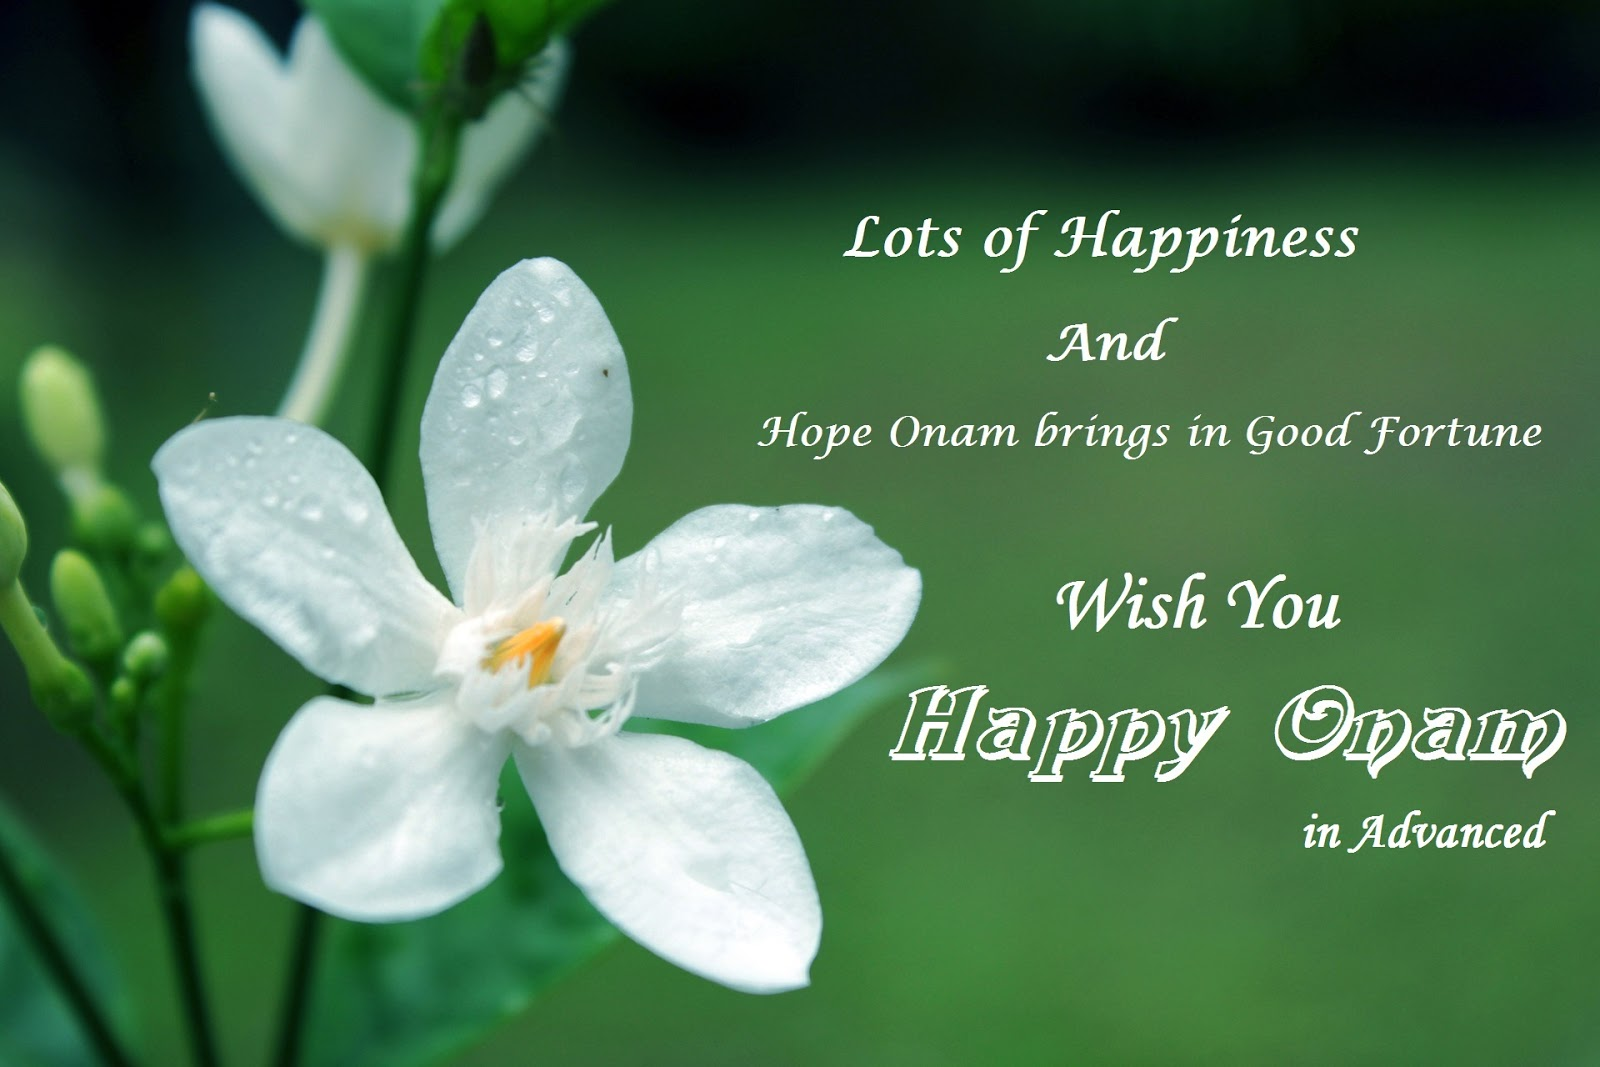 Khushi For Life Advanced Onam Greetings Cards Ecards Wishes Images